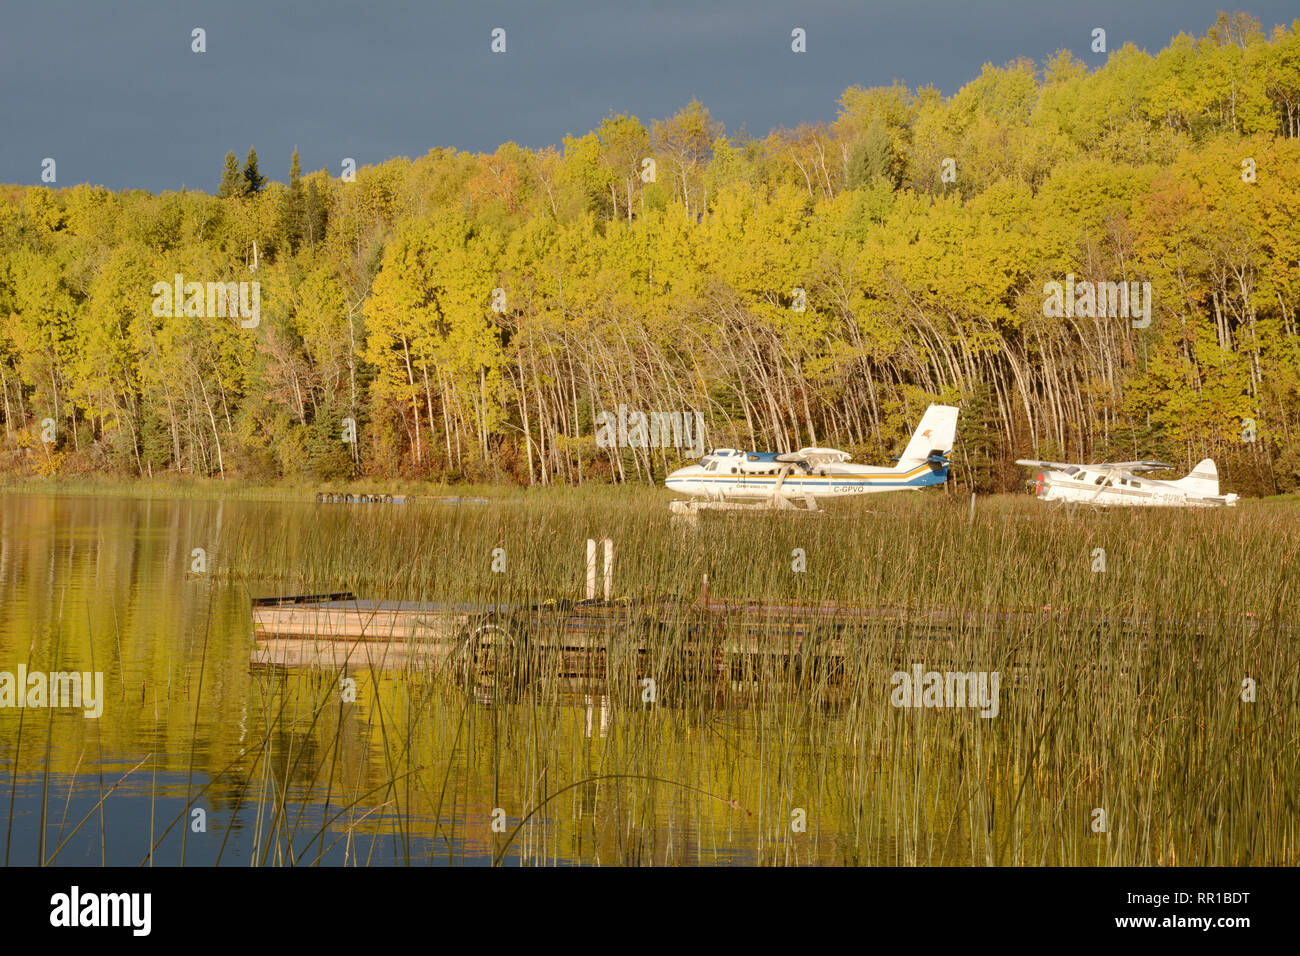 Two float planes docked at a lakeside cottage in the boreal forest town of Missinipe, northern Saskatchewan, Canada. Stock Photo